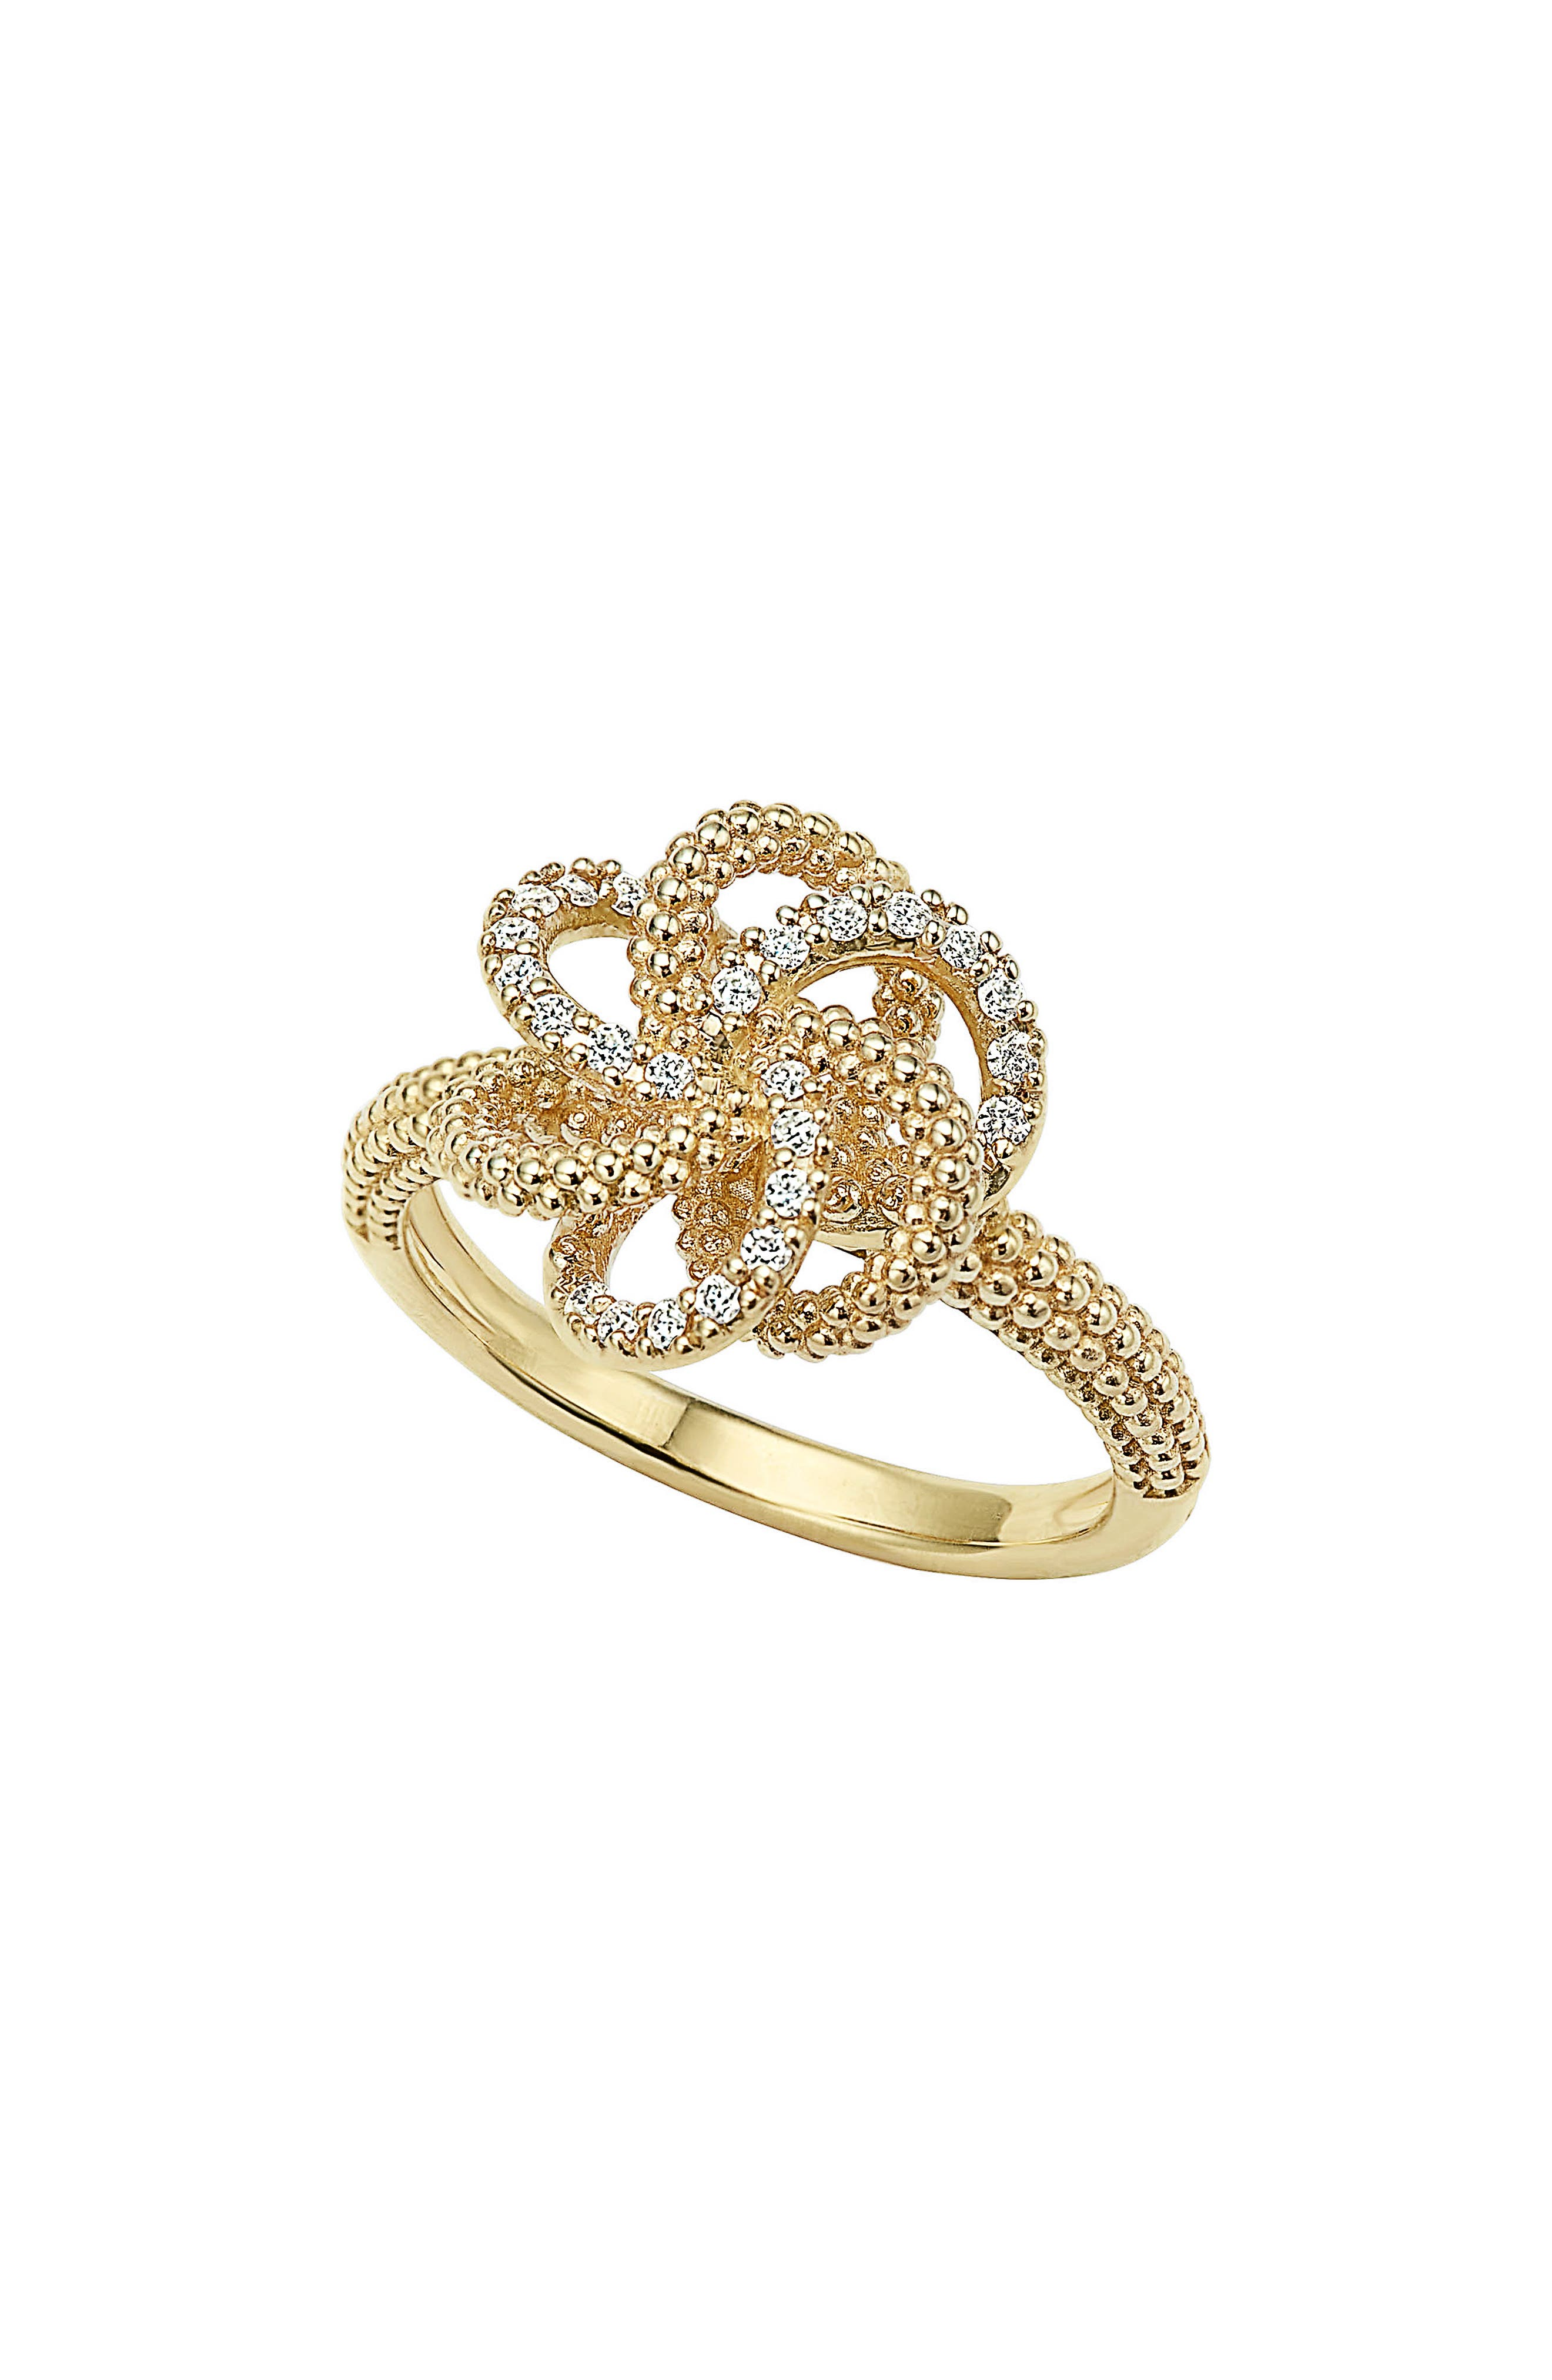 'Love Knot' Diamond Ring,                         Main,                         color, Gold